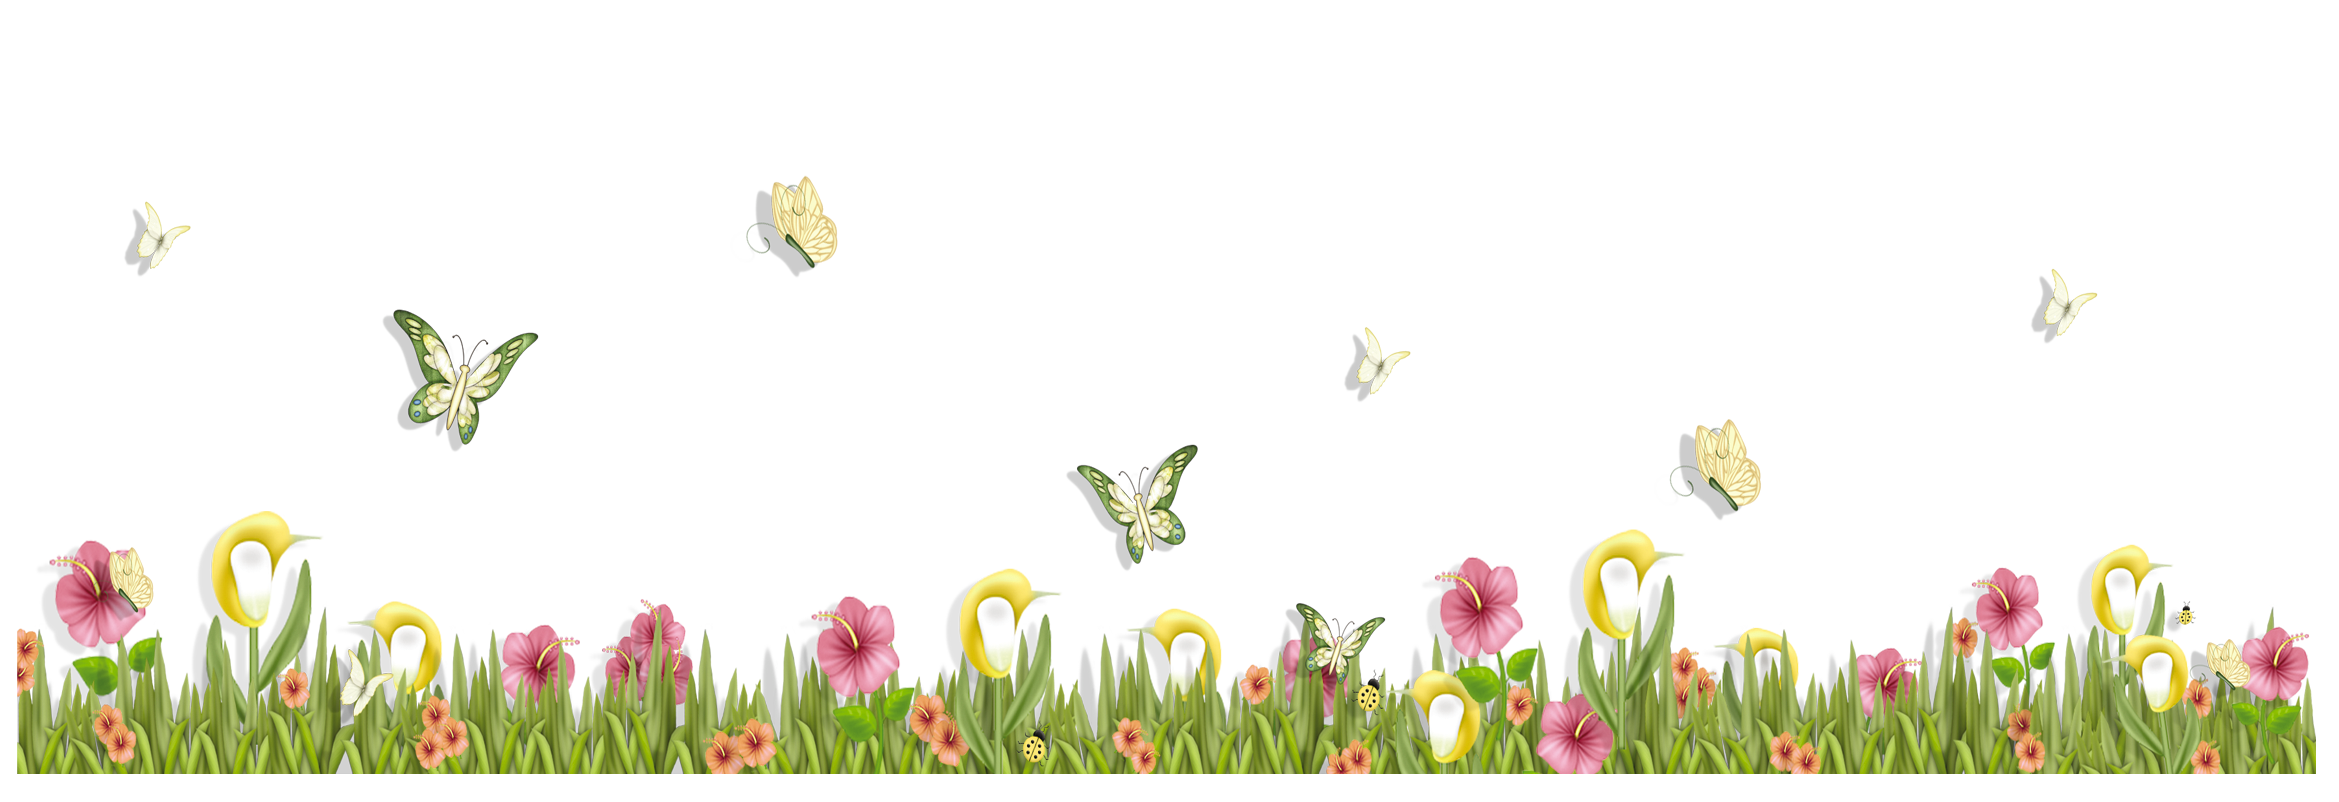 Border flowers png. Grass with butterflies and